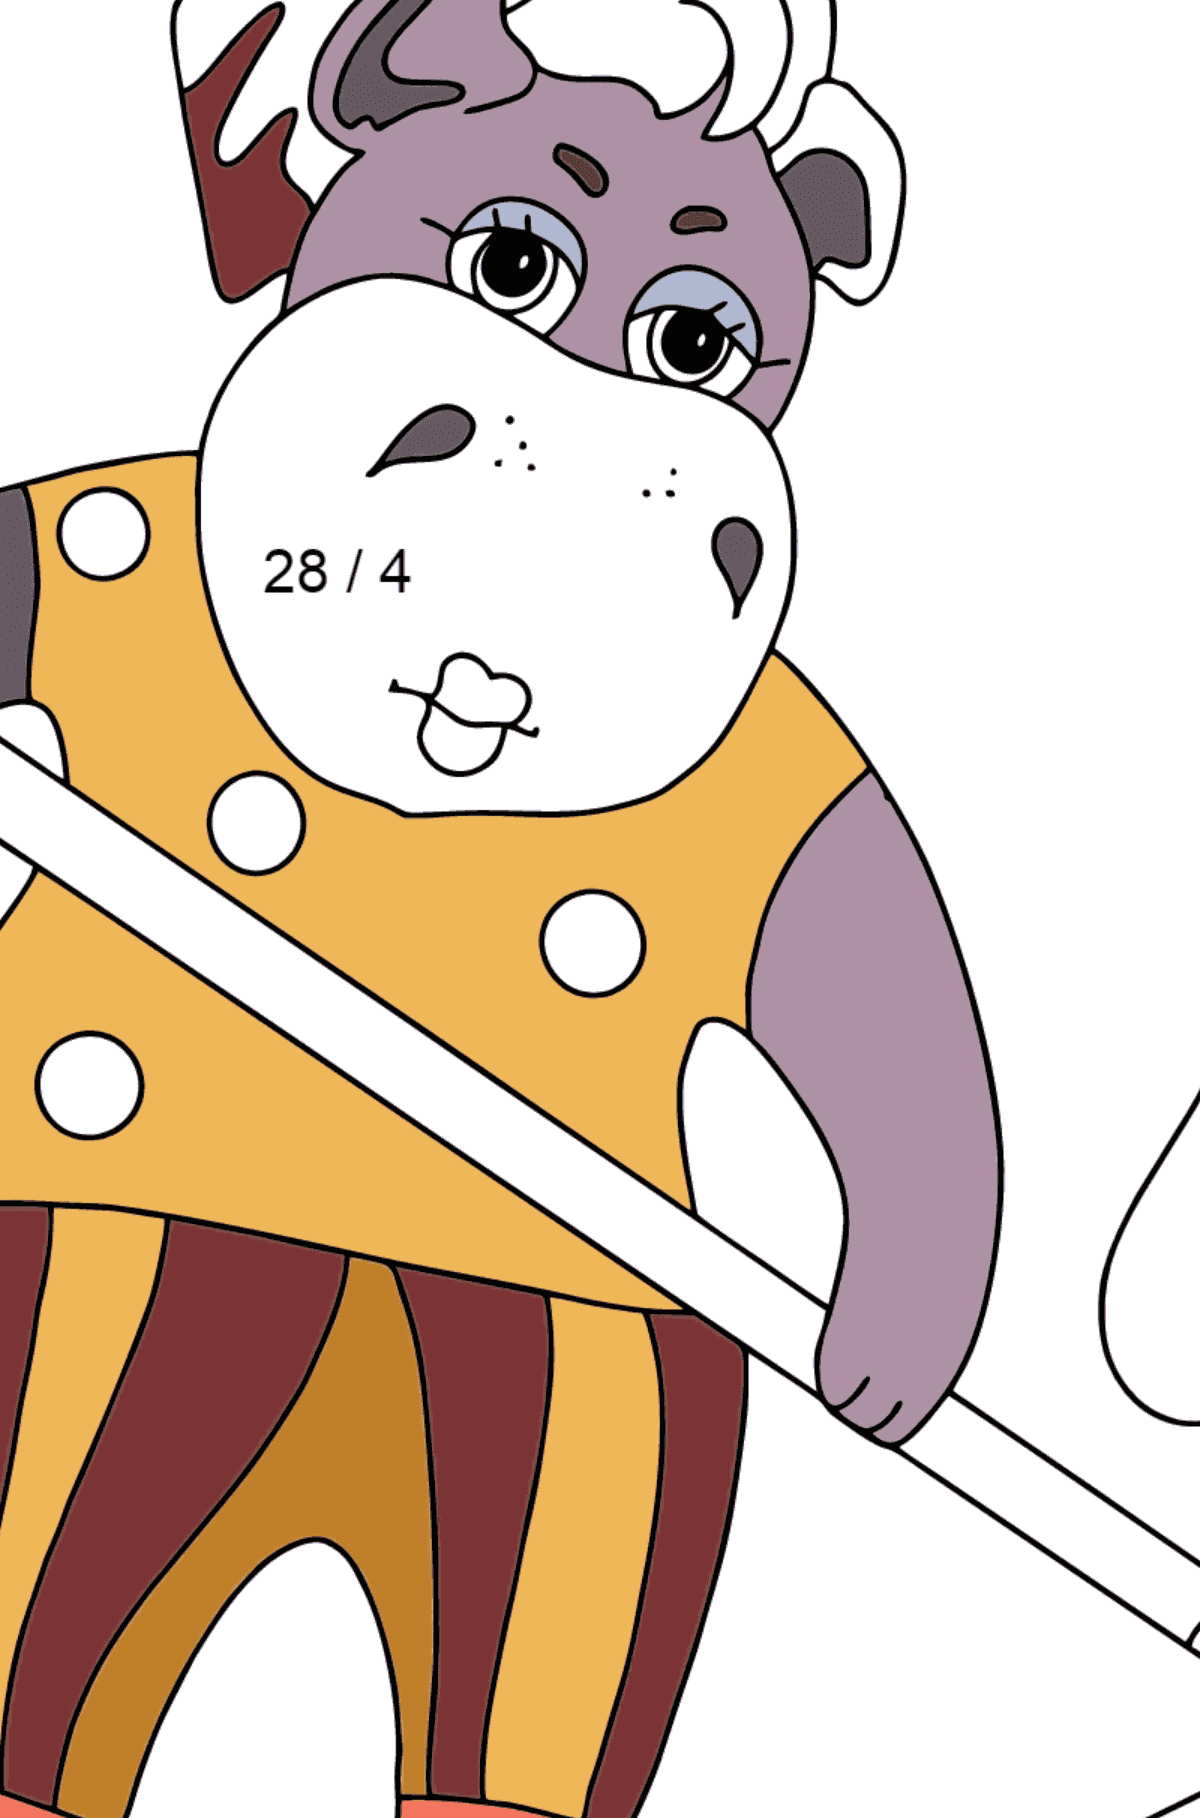 Coloring Page - A Hippo is Collecting Fallen Leaves for Children  - Color by Number Division